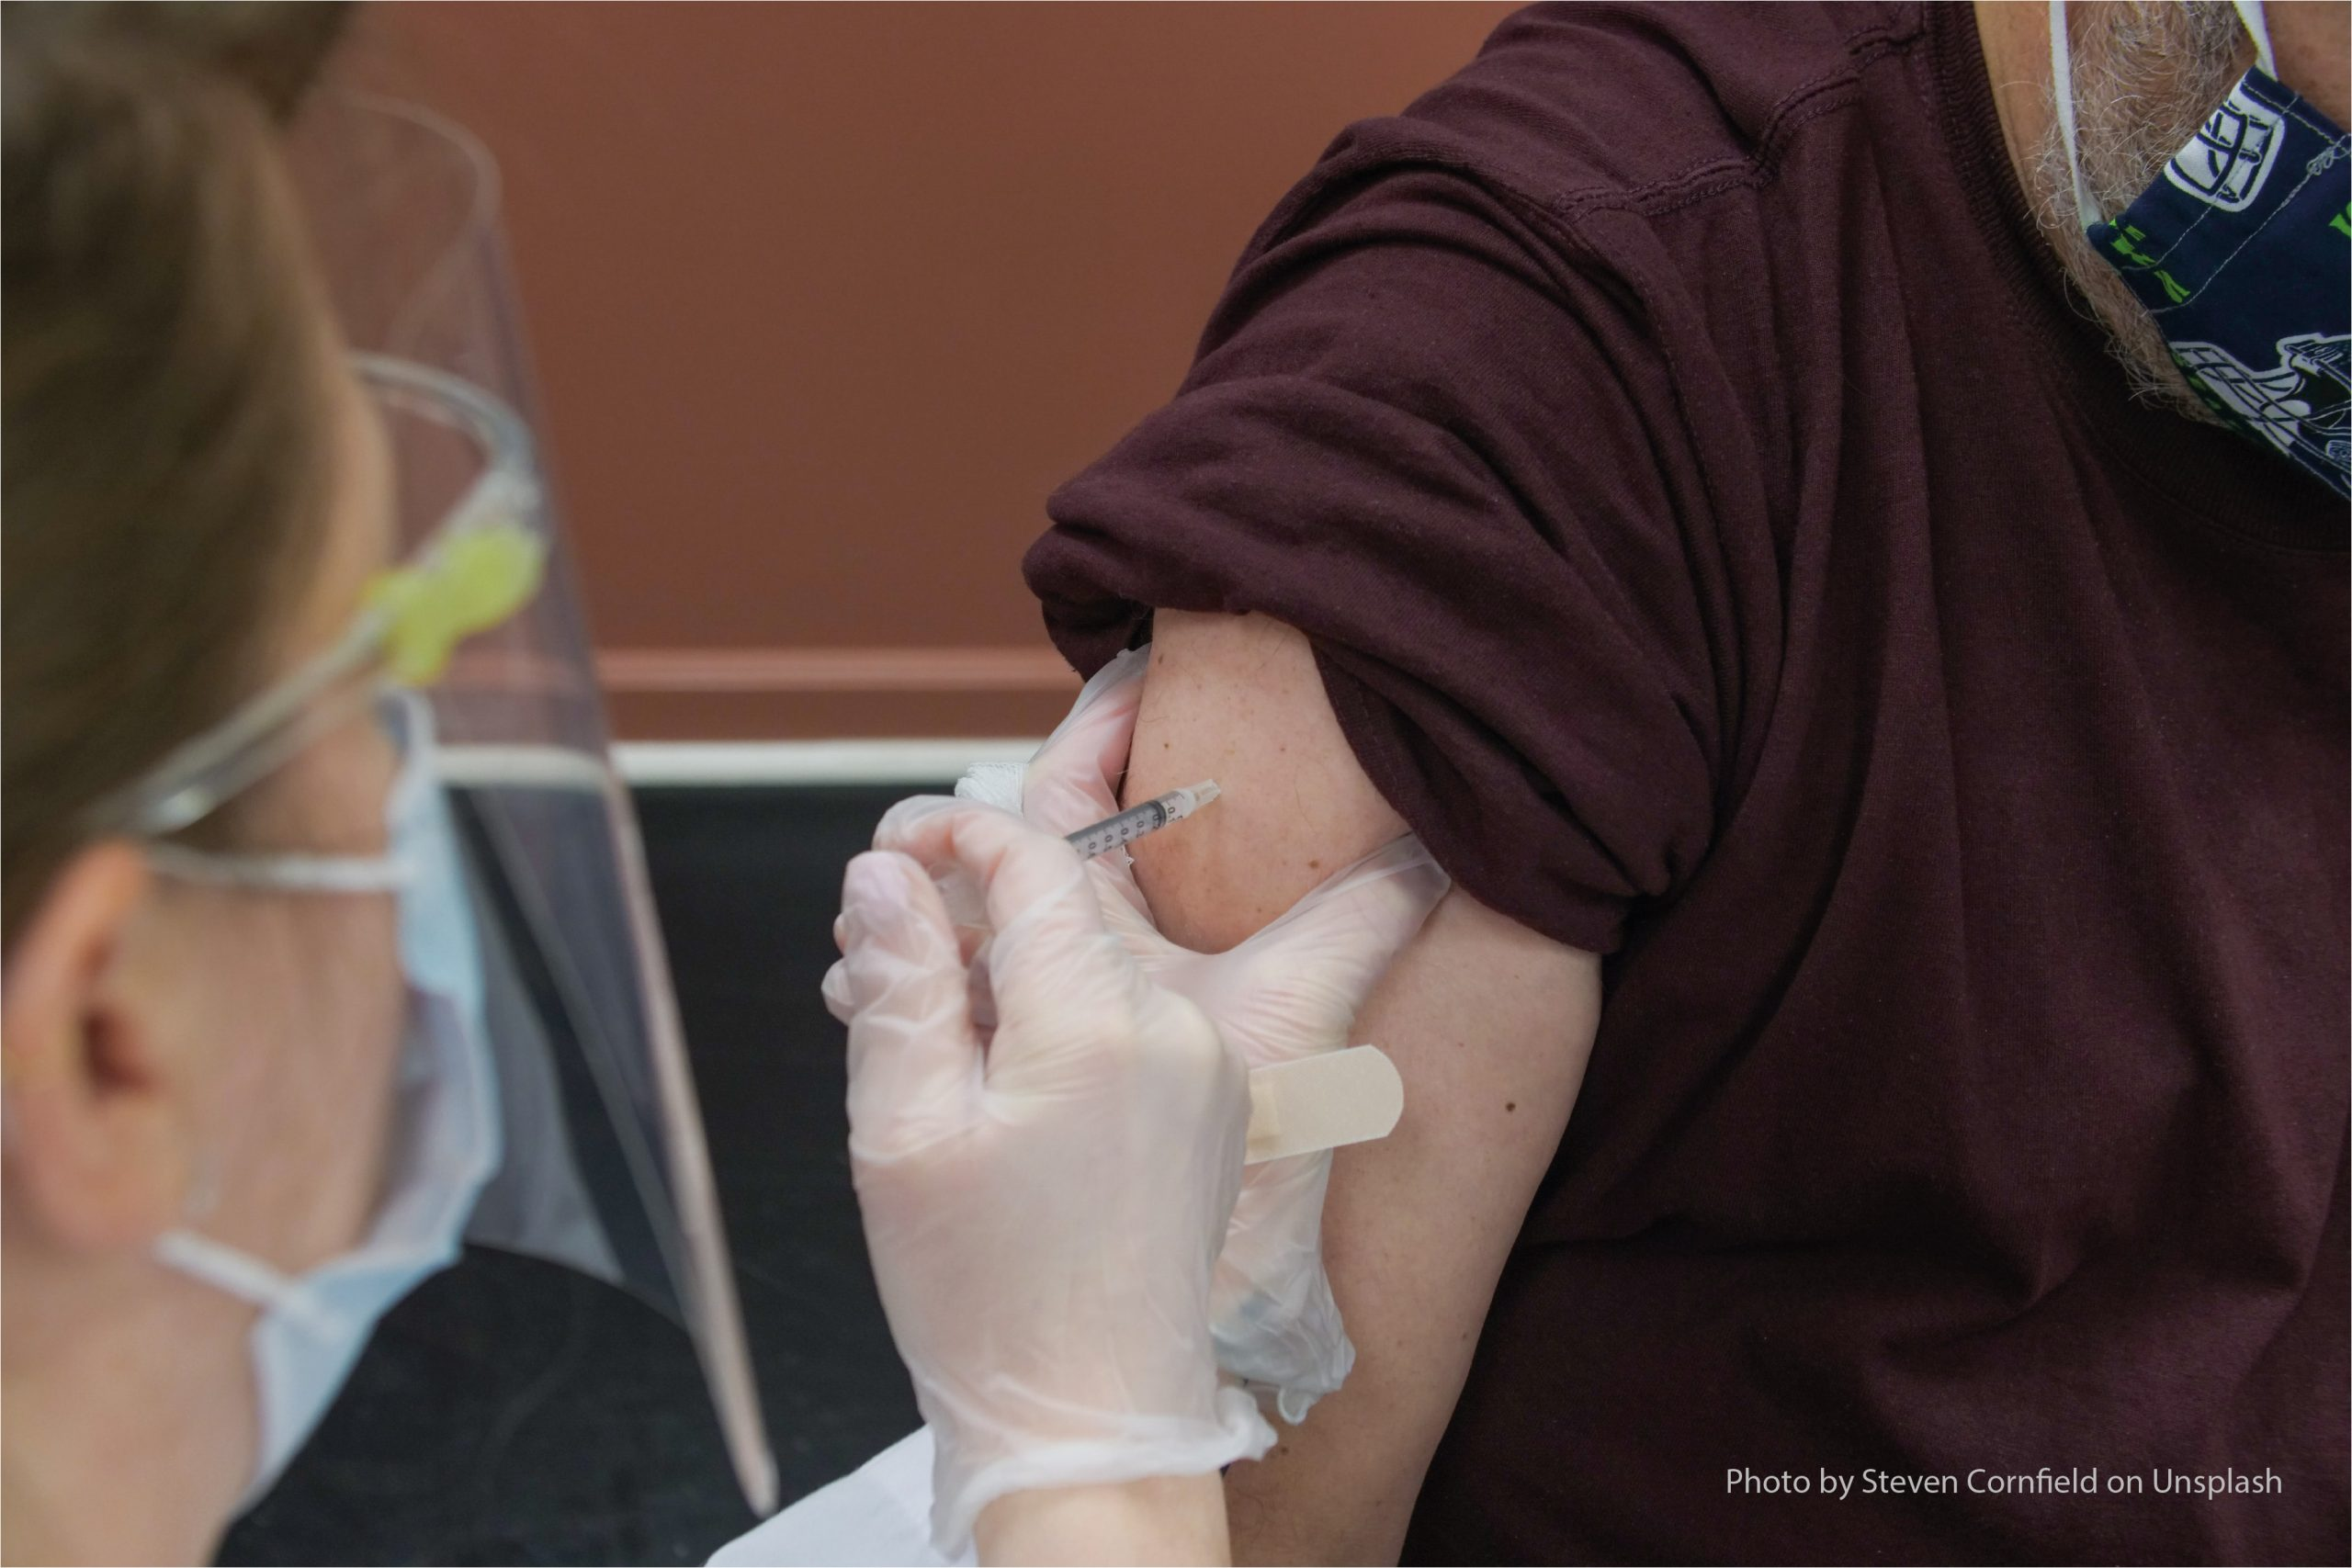 Welsh Vaccination Programme proves successful for people living with Multiple Sclerosis (MS)